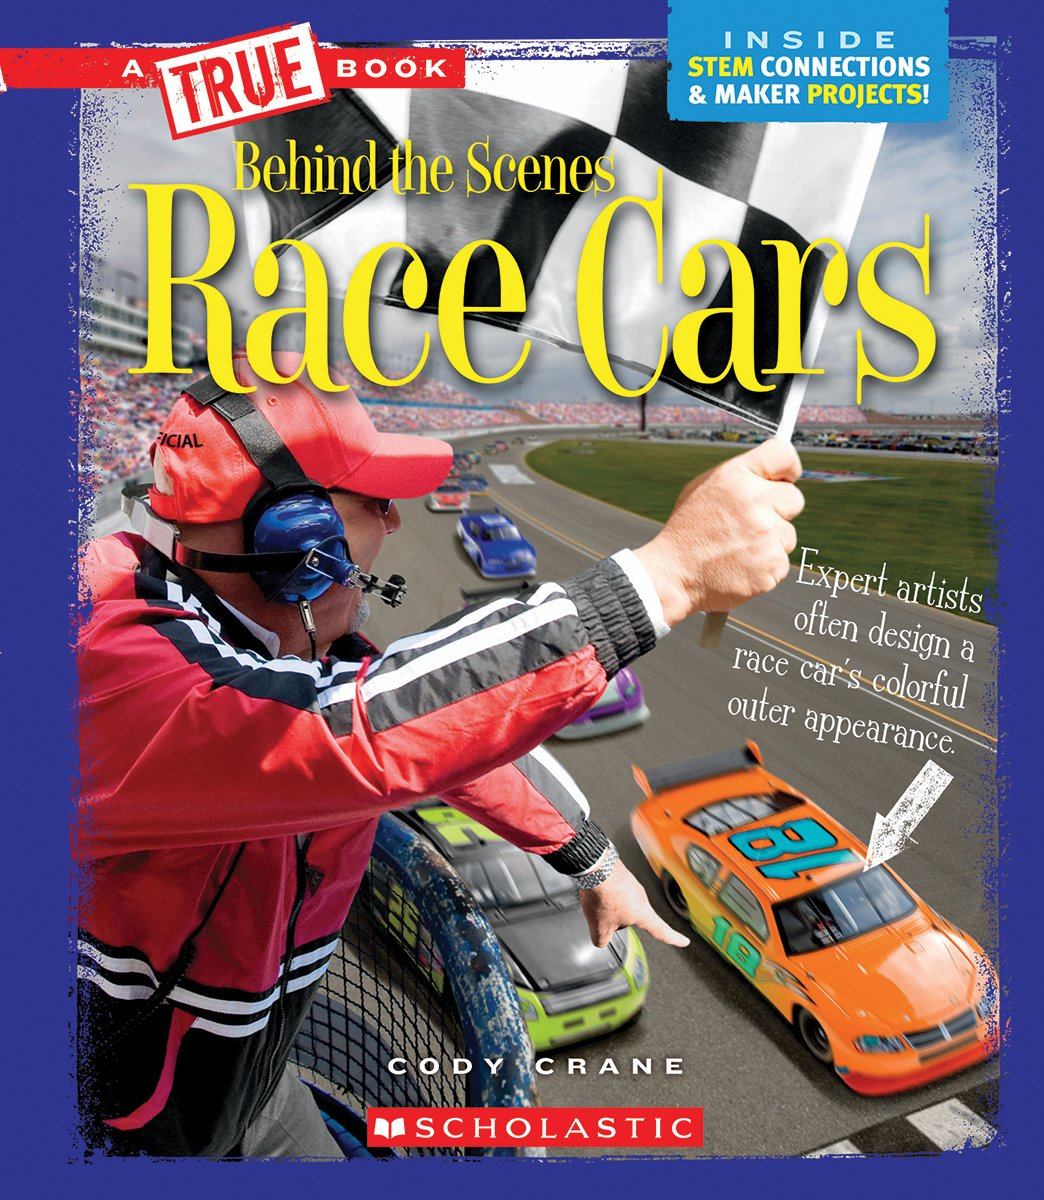 Race Cars (True Book Behind the Scenes)